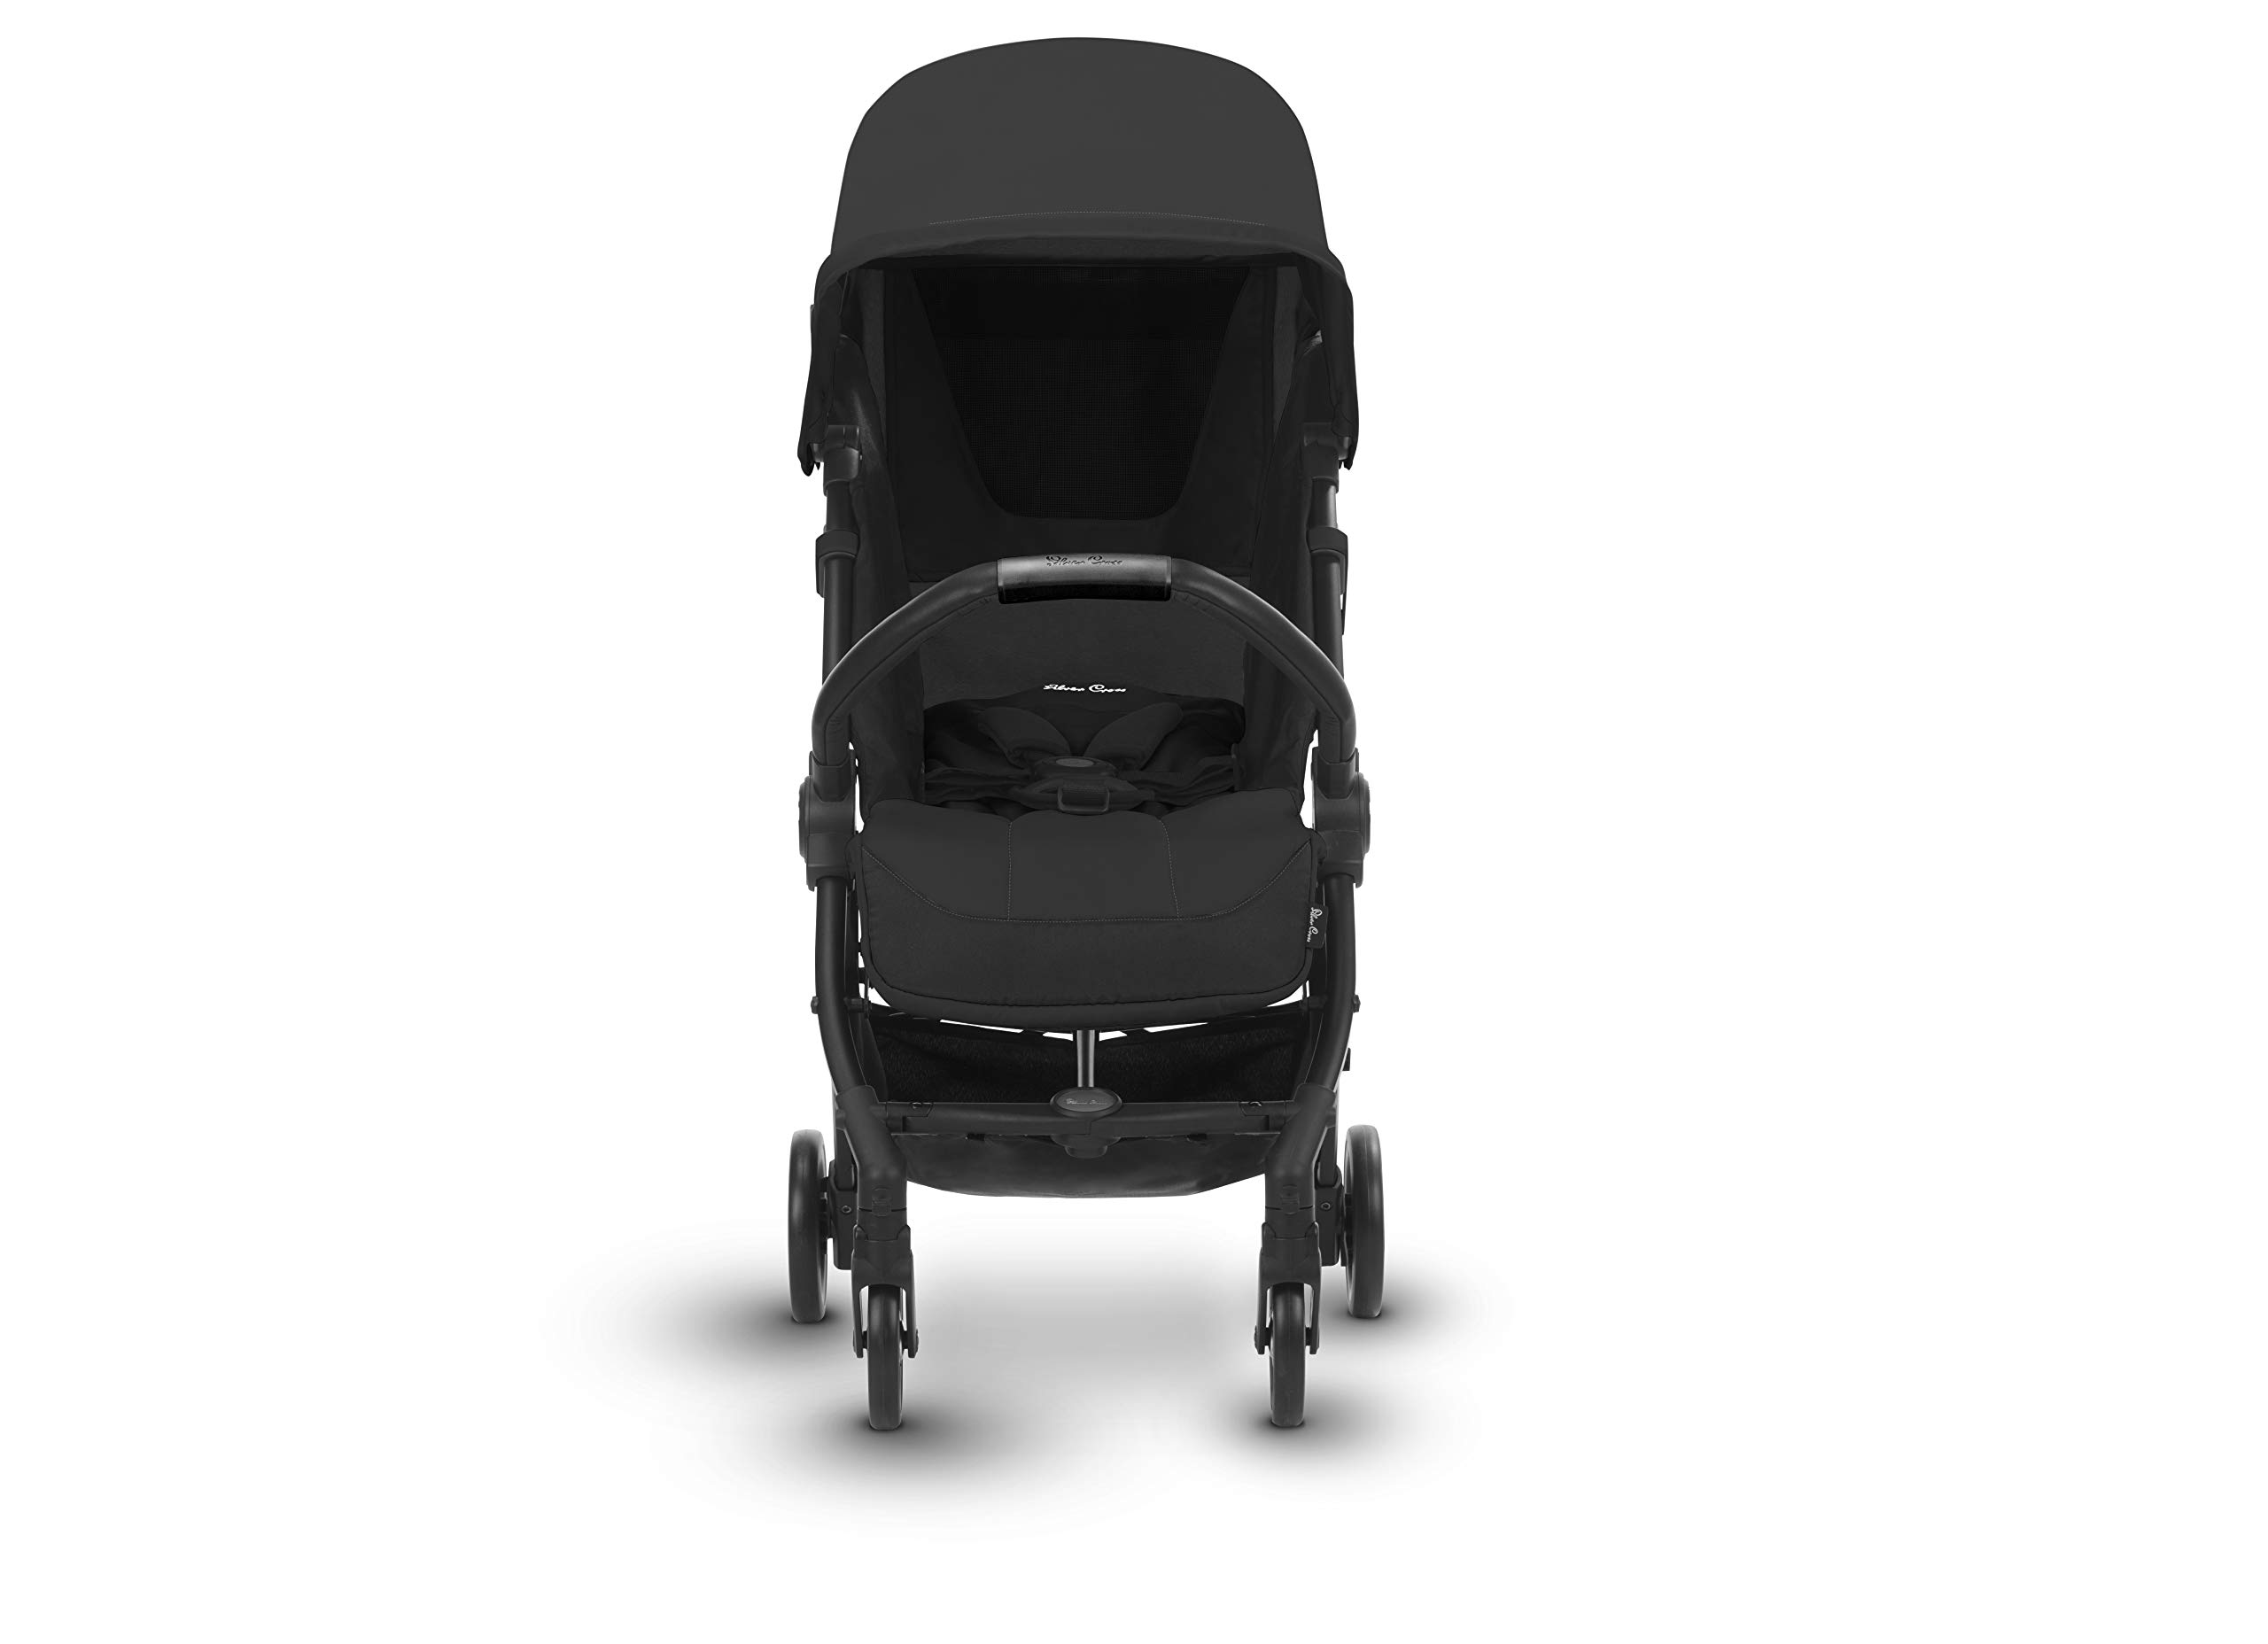 Silver Cross Jet Stroller, Ebony Silver Cross Ultra compact and light travel stroller Cabin approved. Folded Dimensions- 18 cm D x 30 cm W x 55 H cm Suitable from birth 6